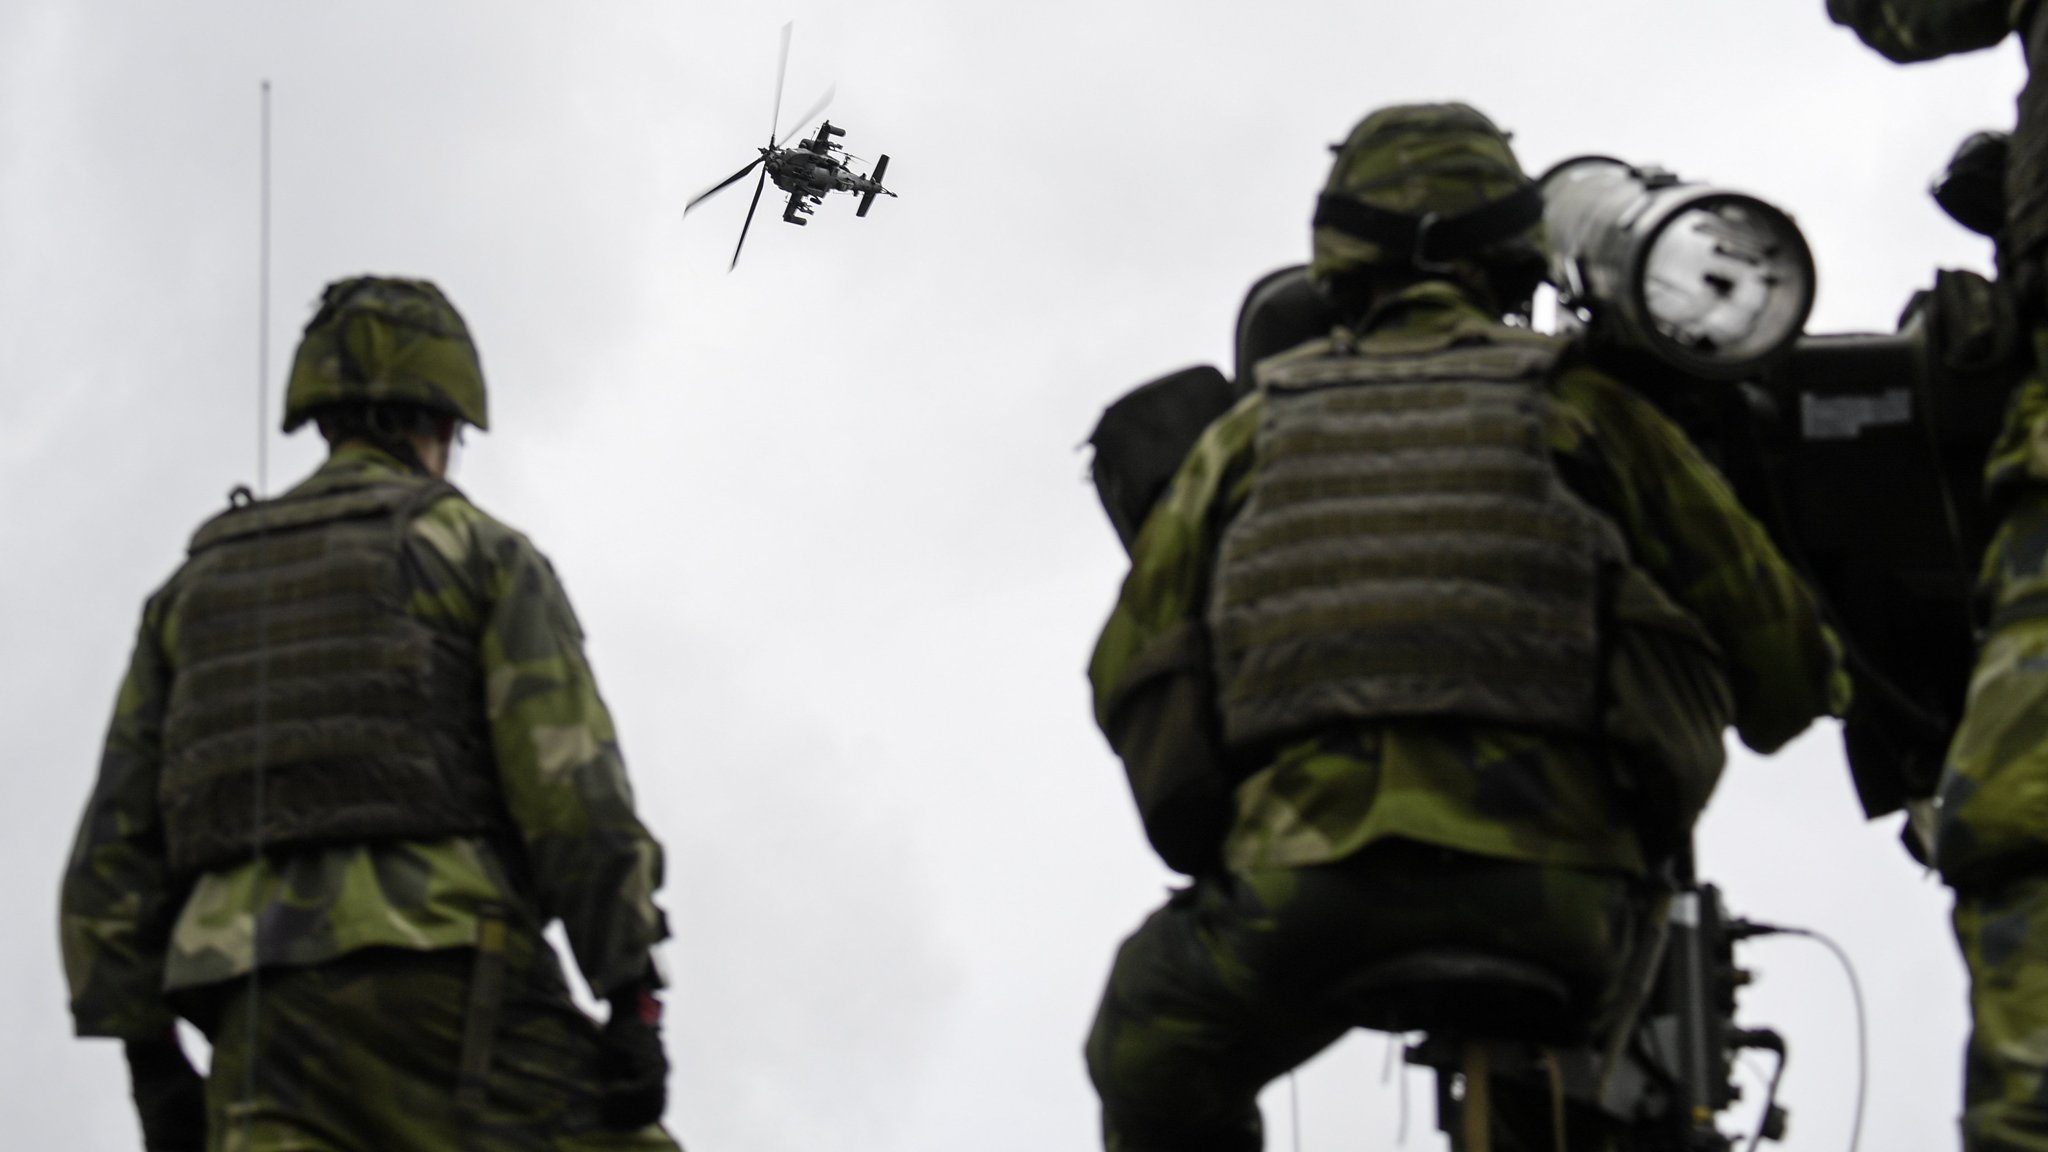 Swedes told how to prepare for war as Russia fears grow